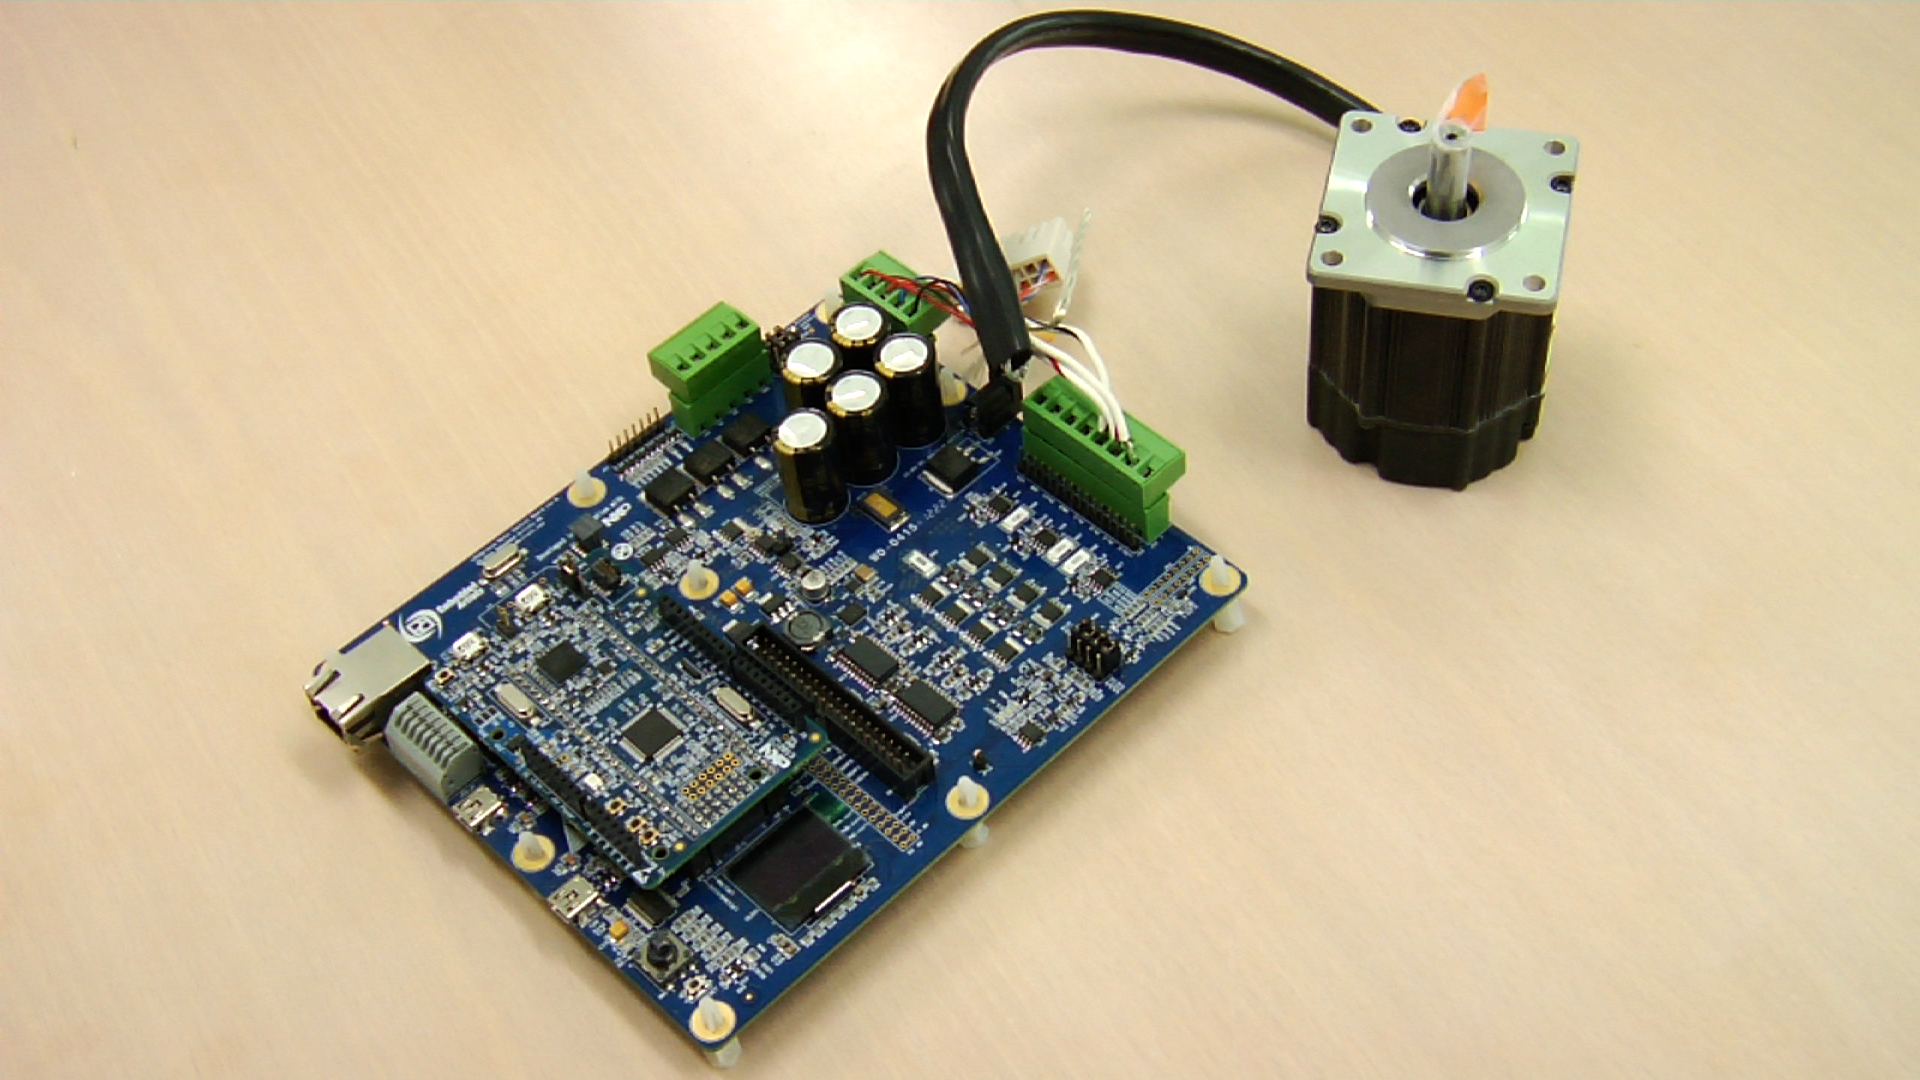 Figure 2 - Two motor control 'solution boards' based on the LCP1500 series are available from NXP, which include baseboards, motor and free firmware.